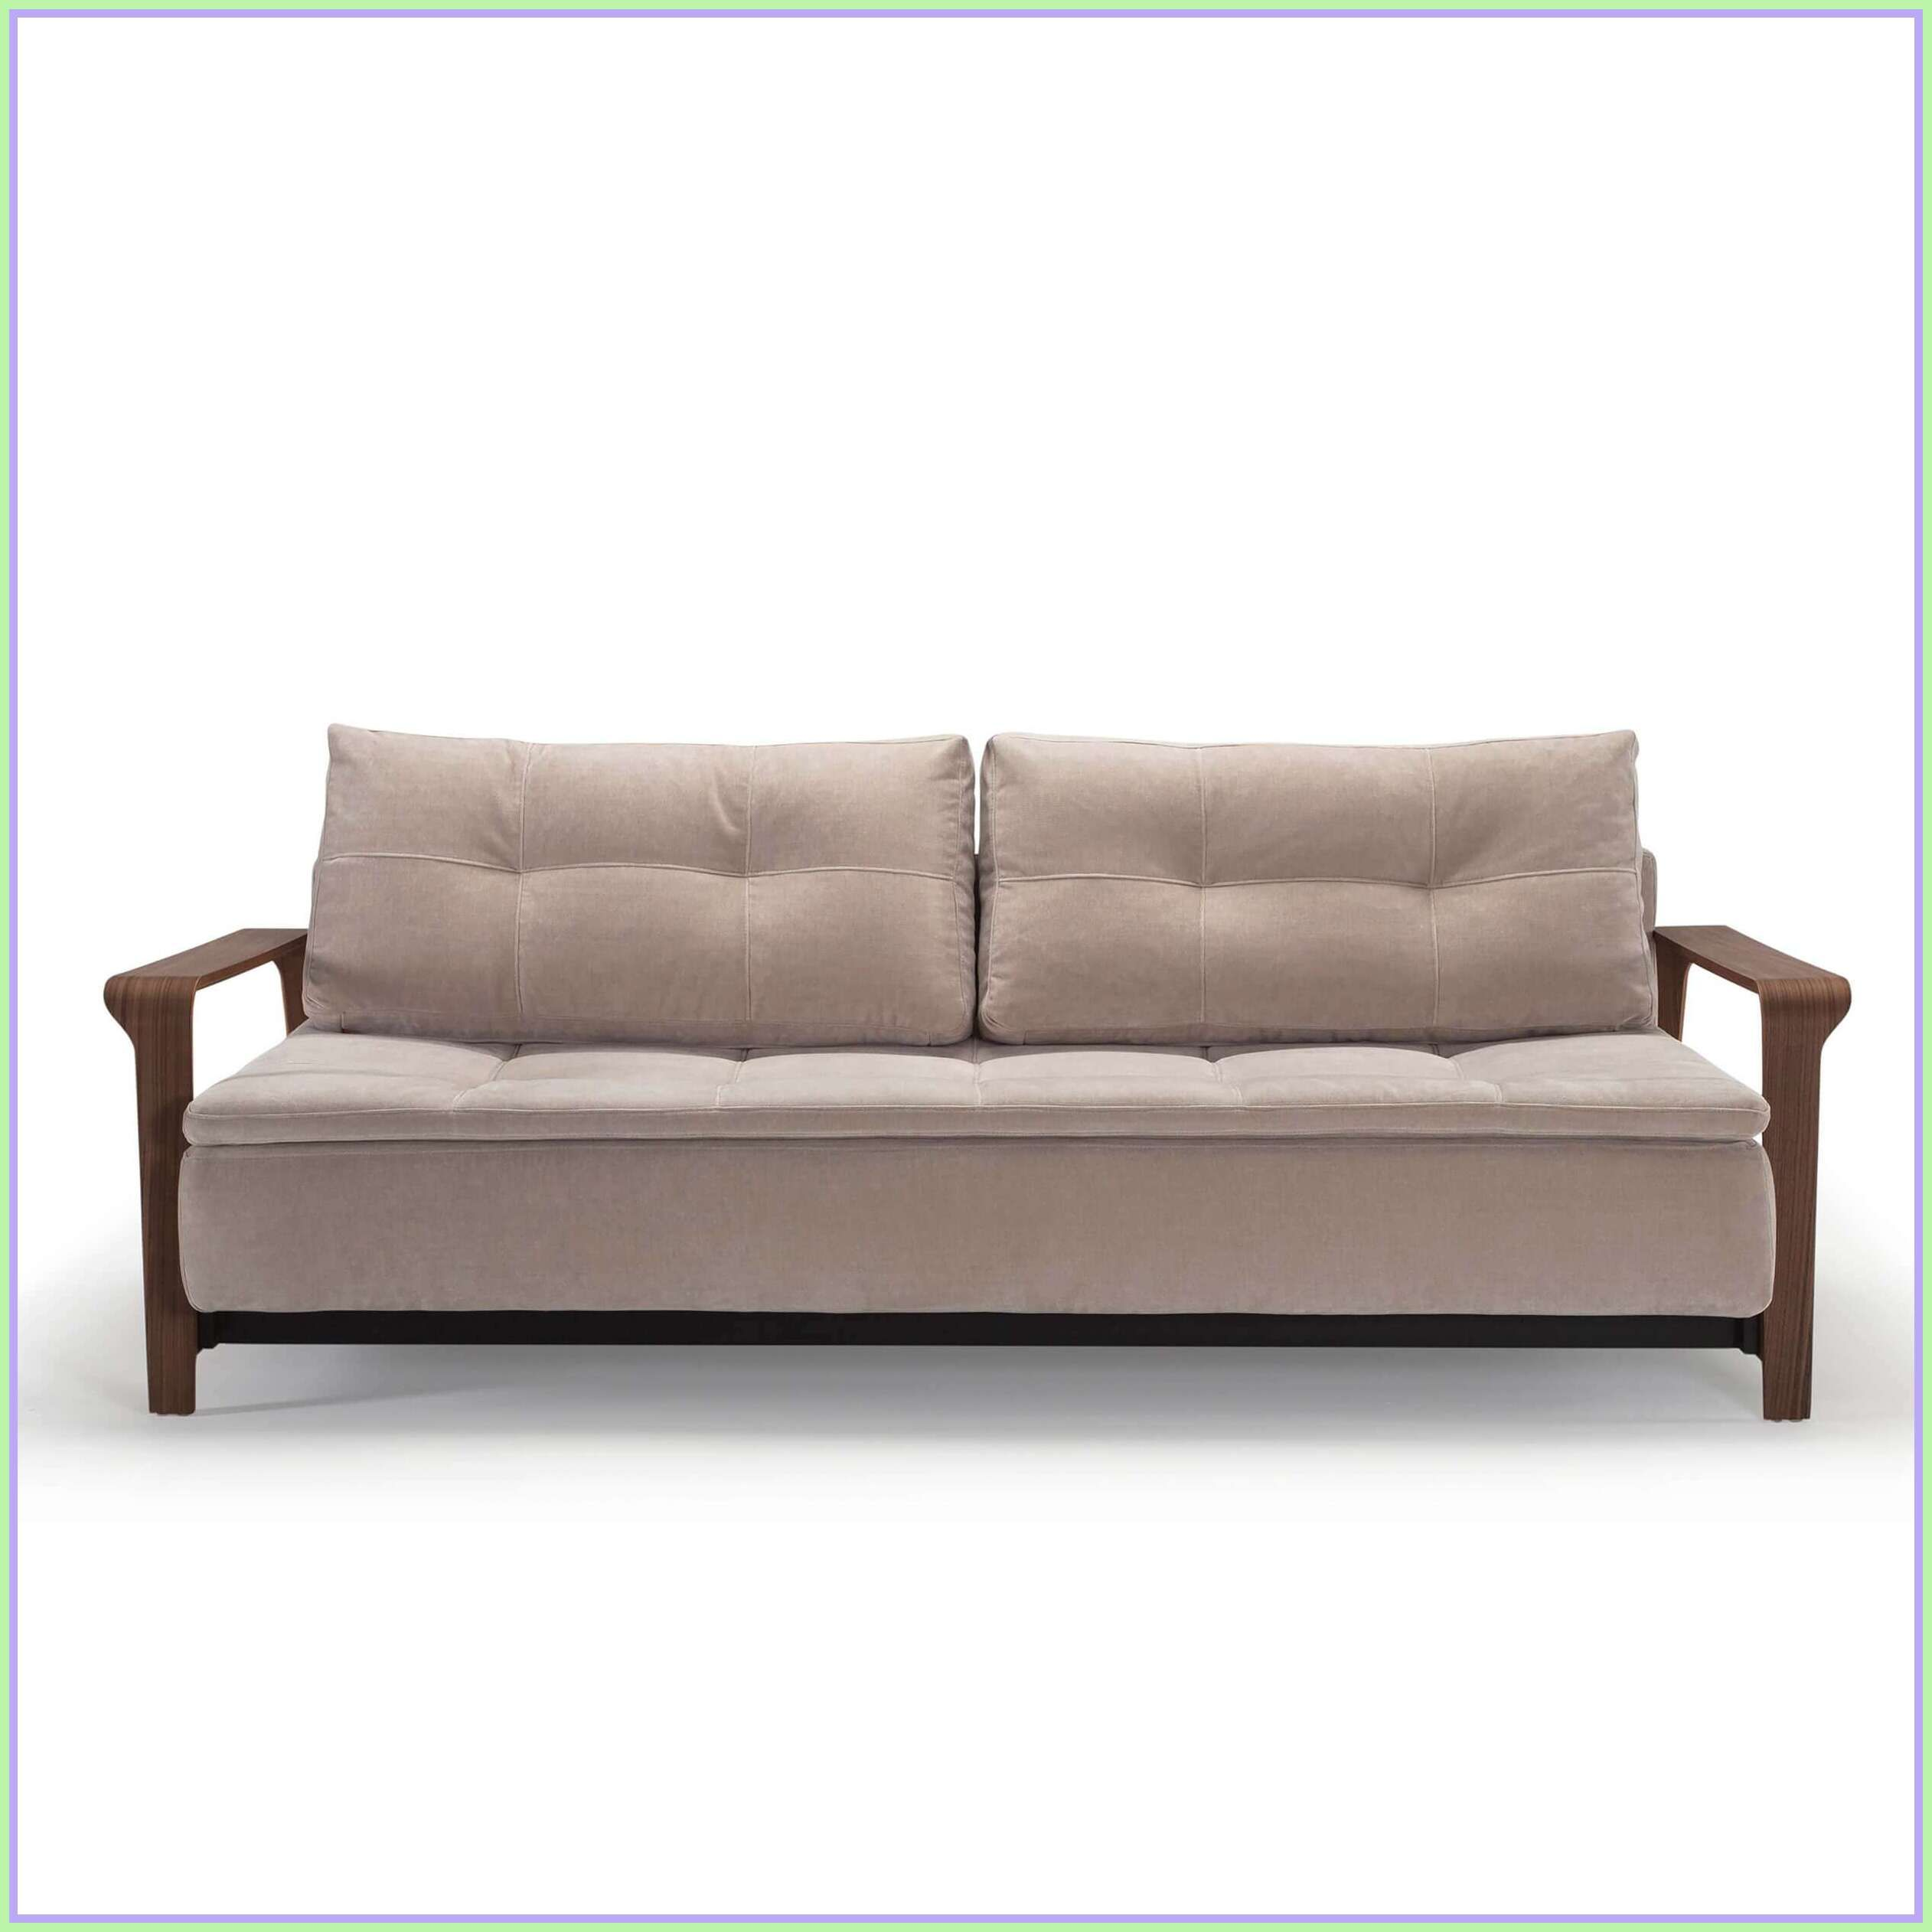 Pin On Sofa Bed Mattress Topper